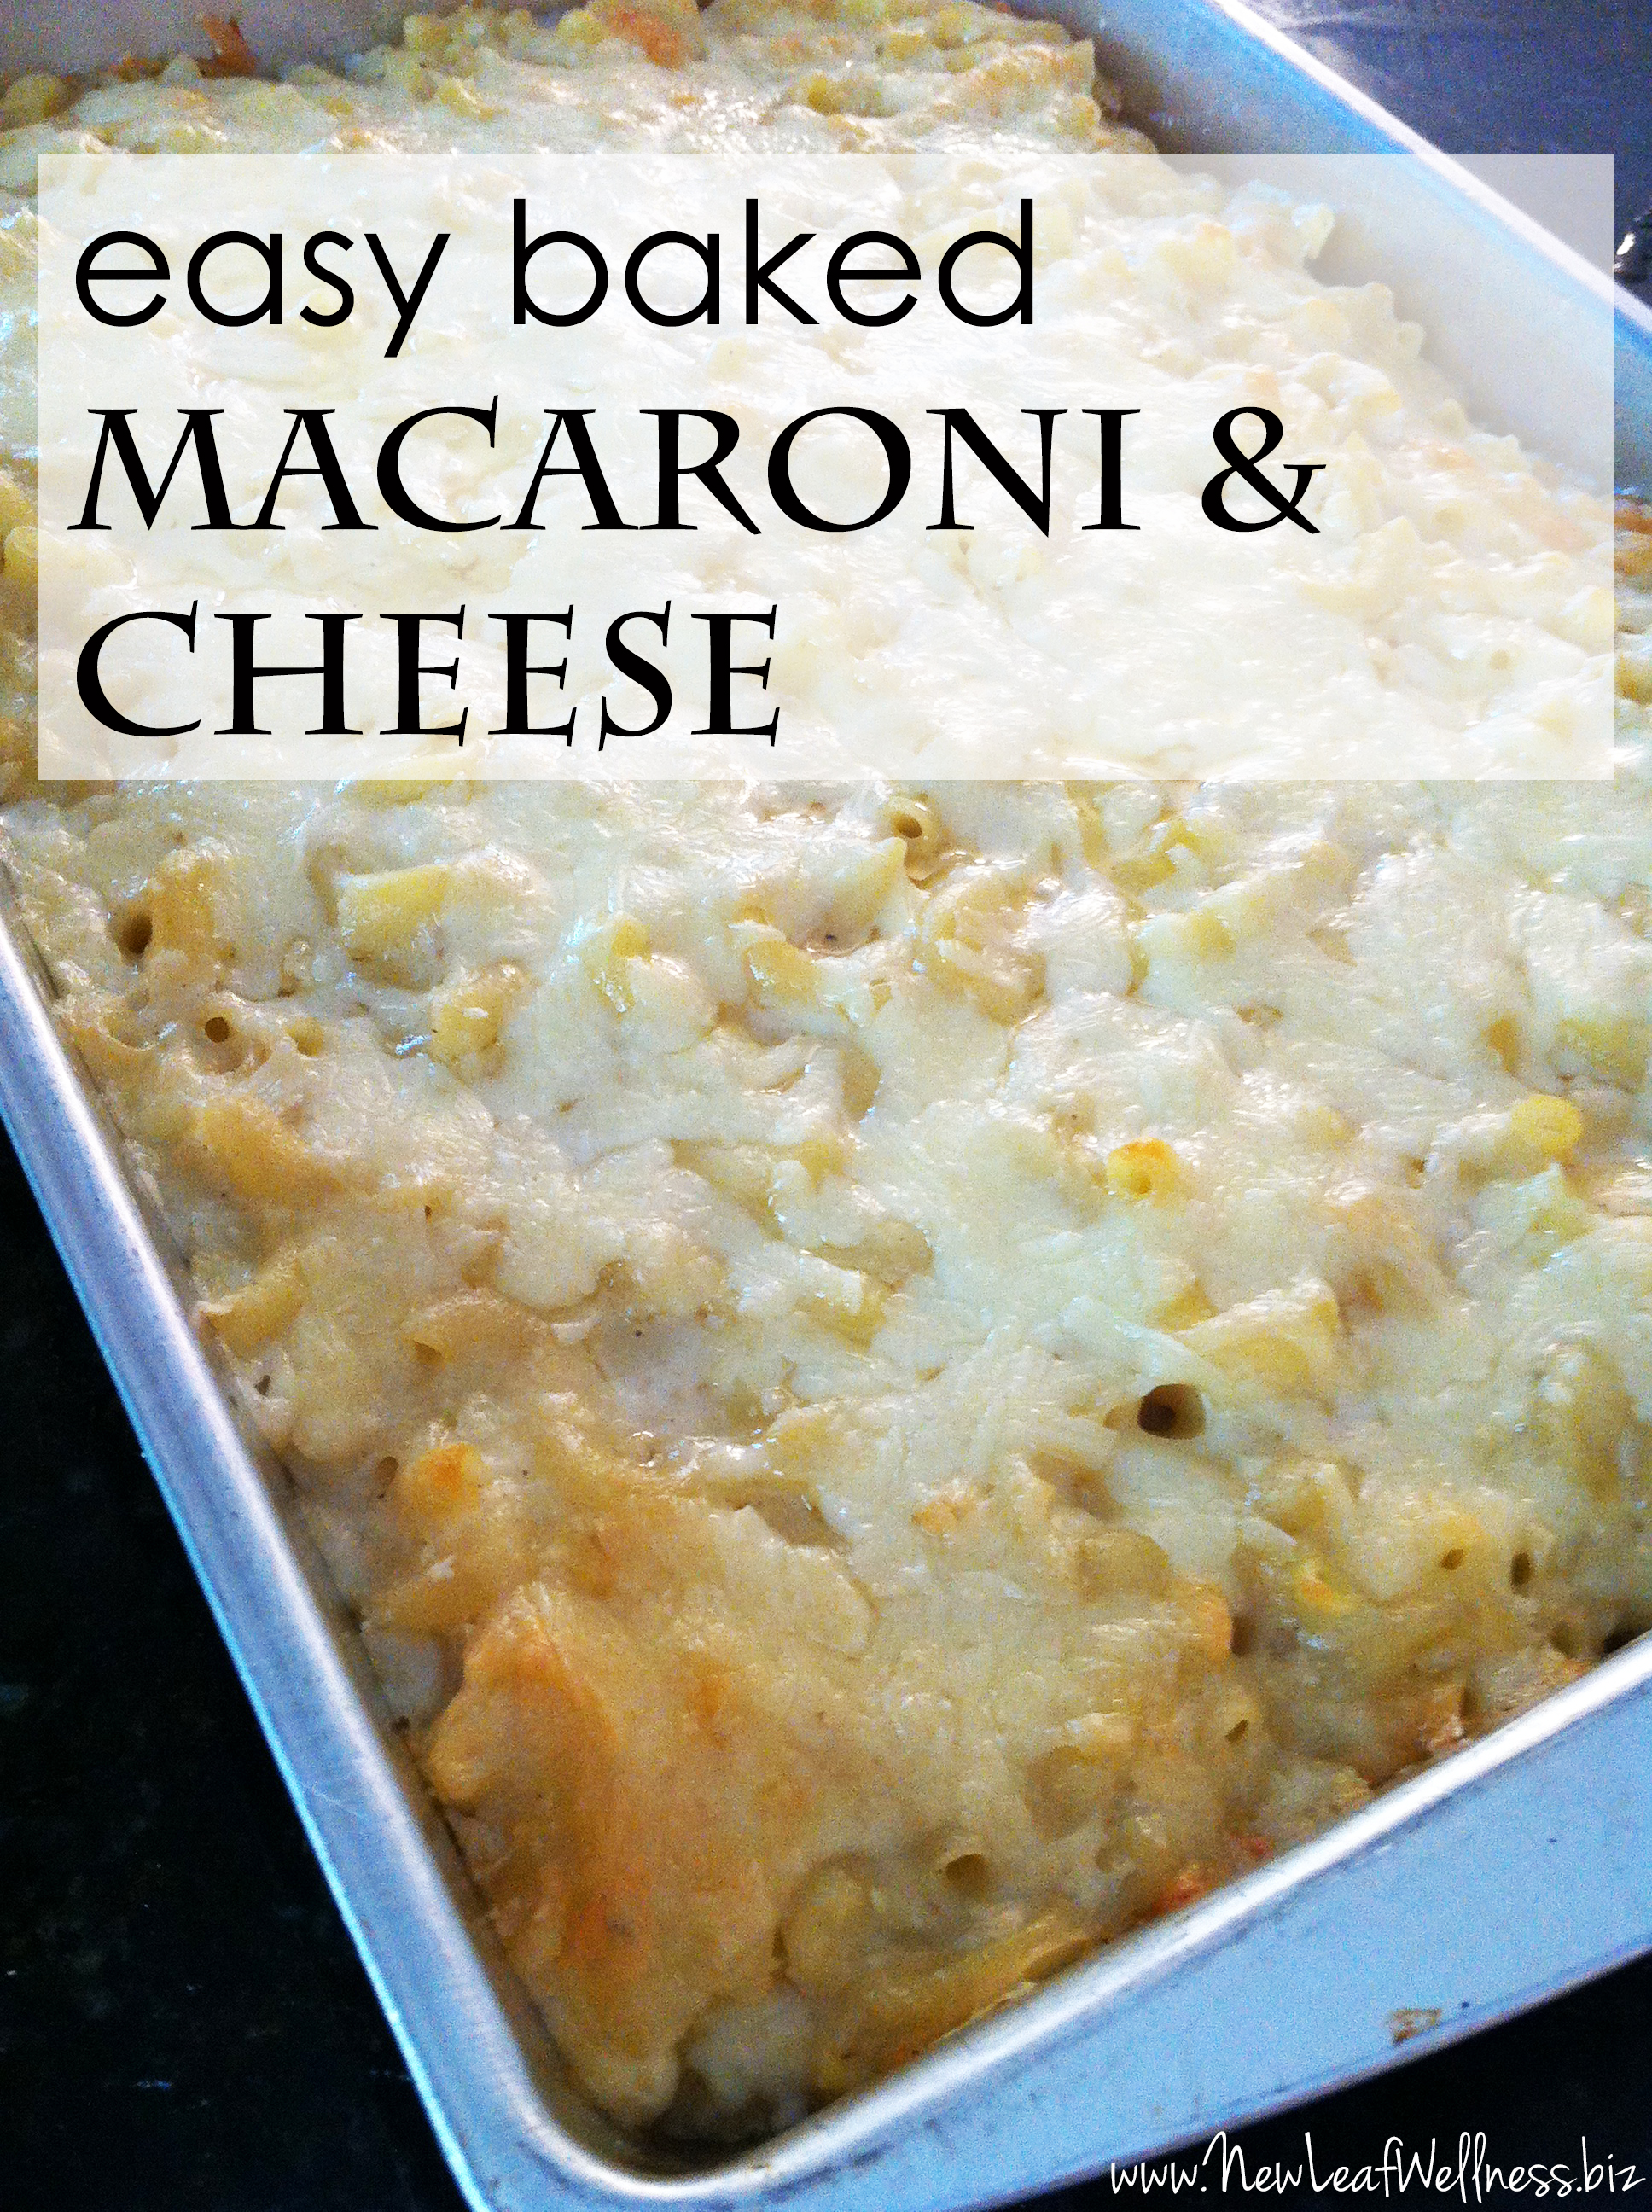 Mary's easy baked macaroni and cheese recipe – New Leaf Wellness